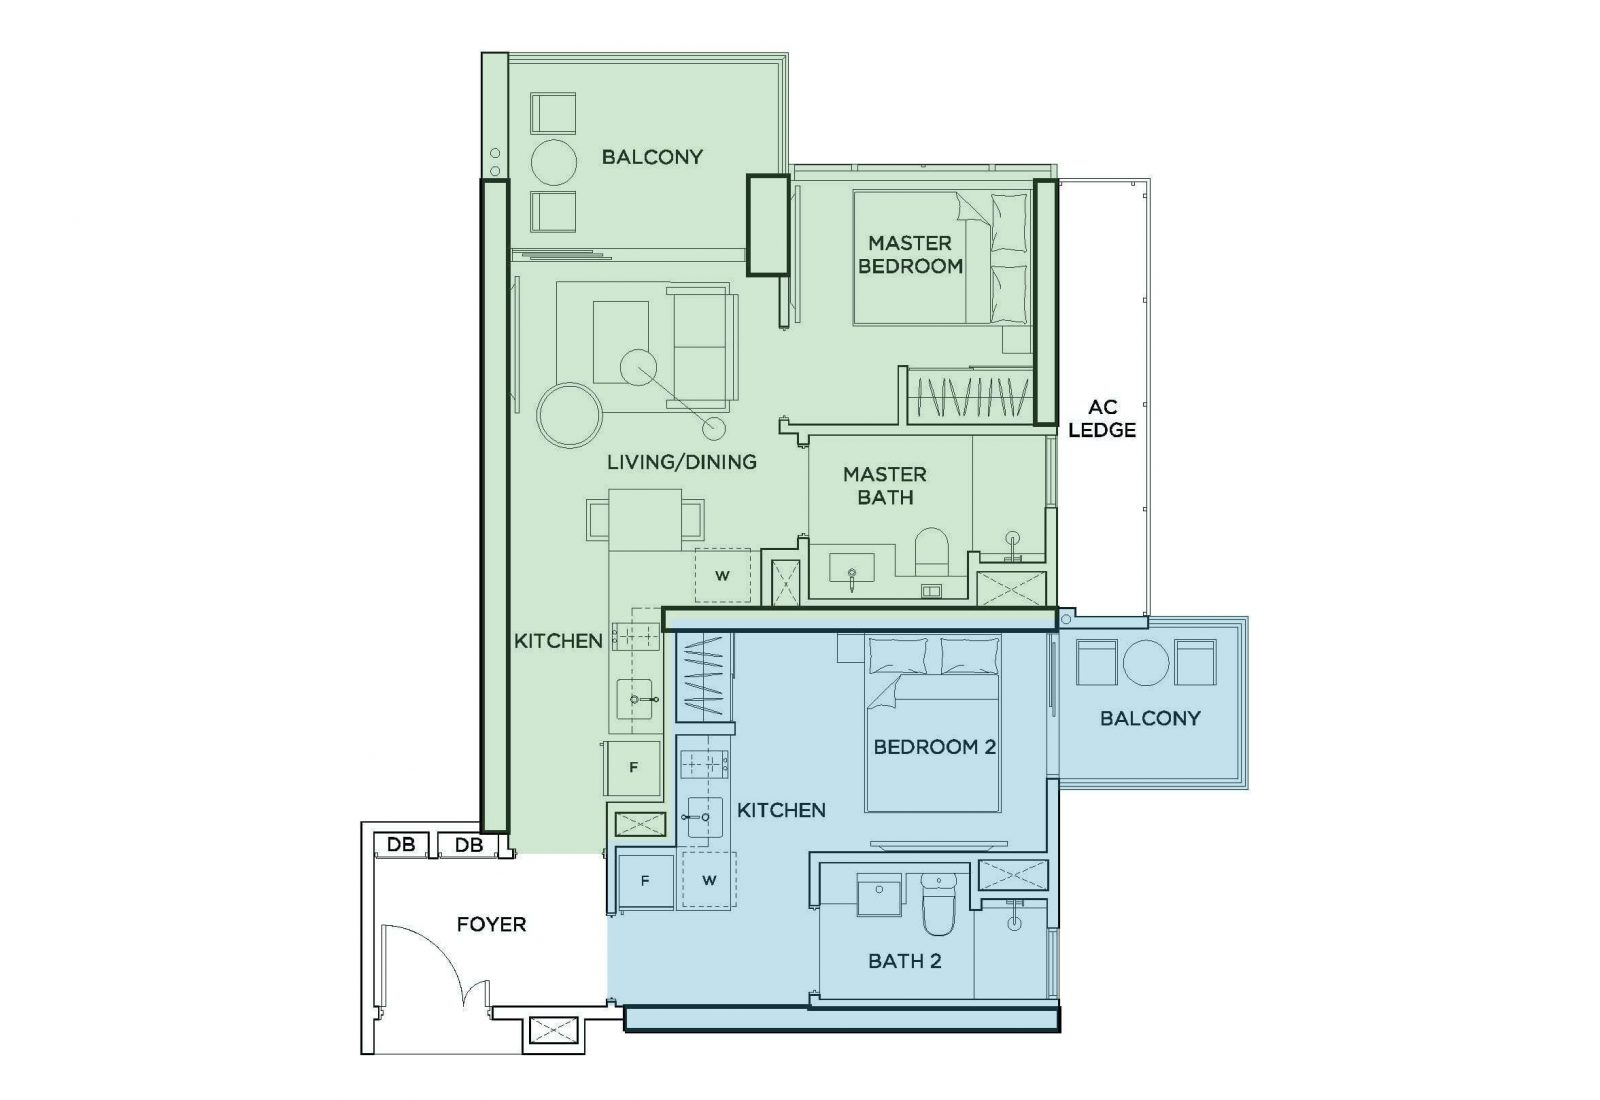 2 bedroom dual key condo floorpan